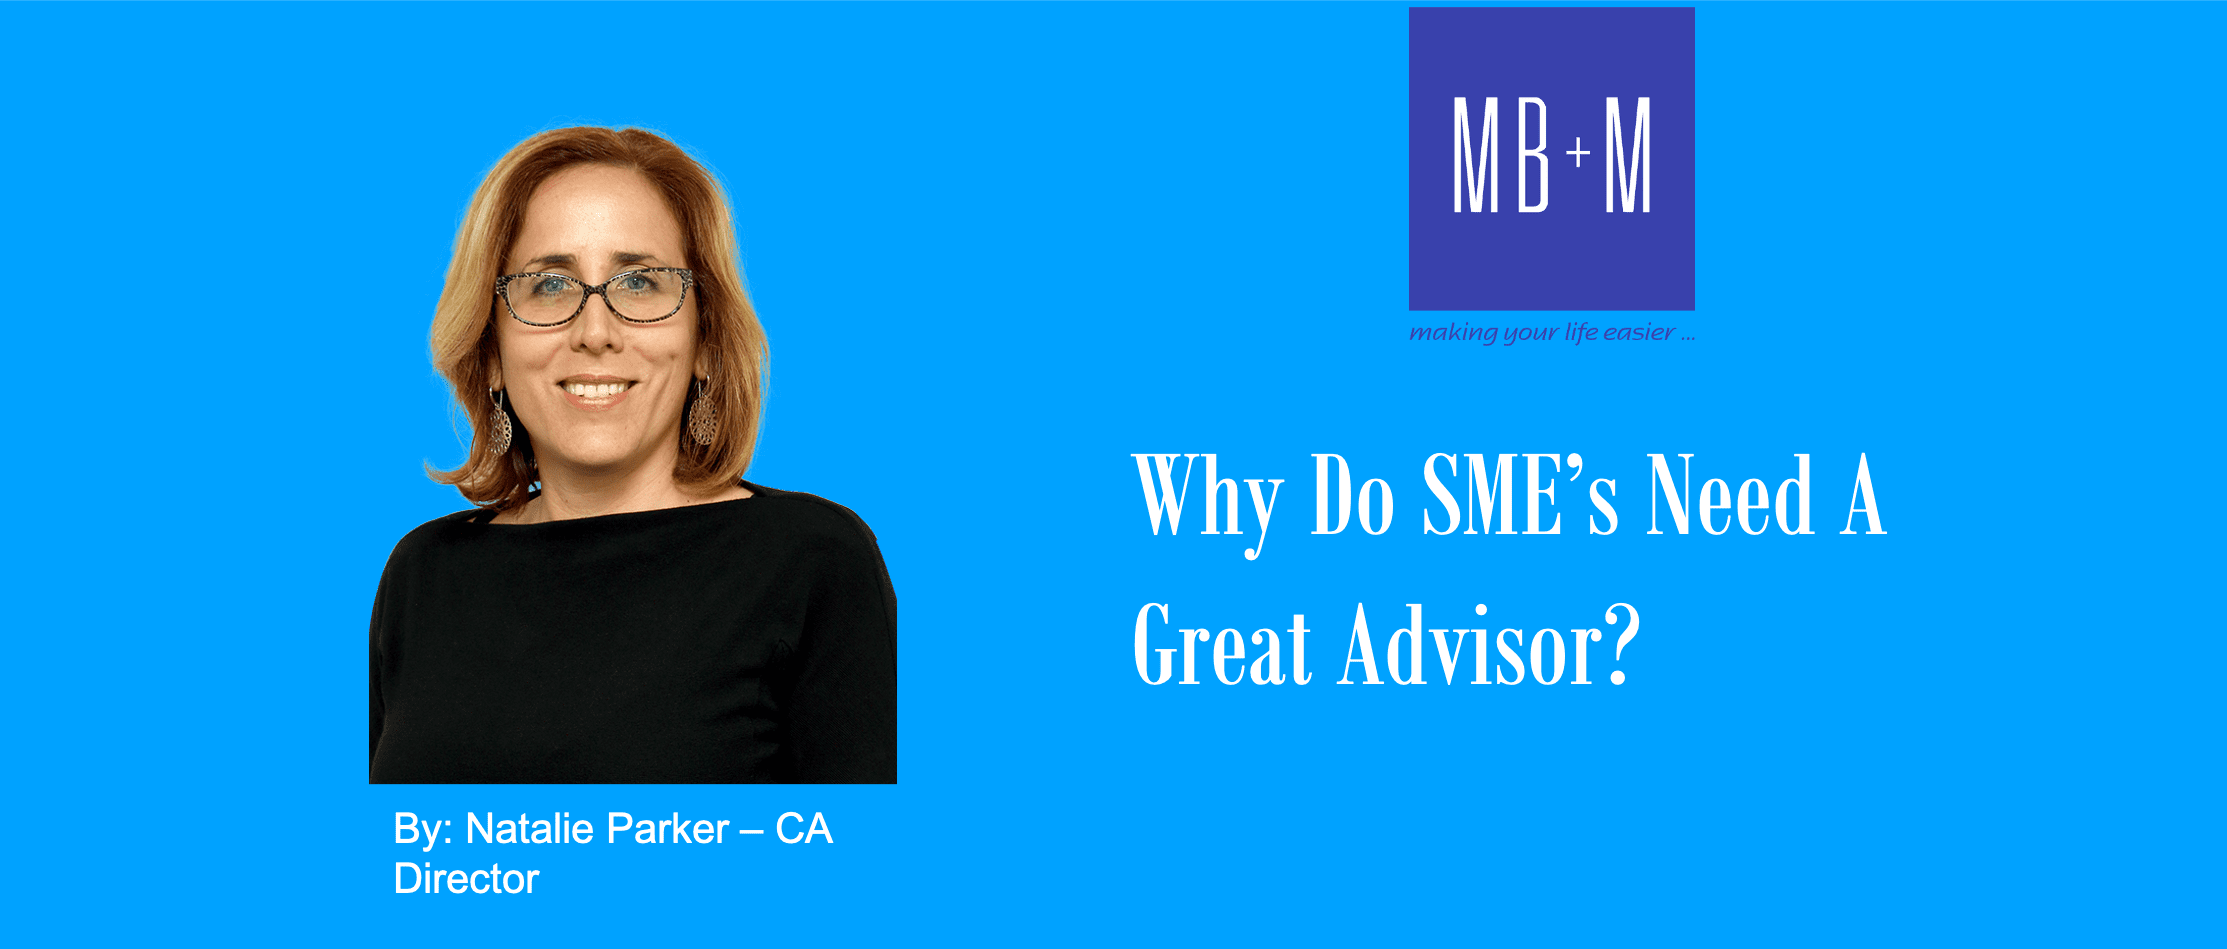 Why do SME's need a great advisor?